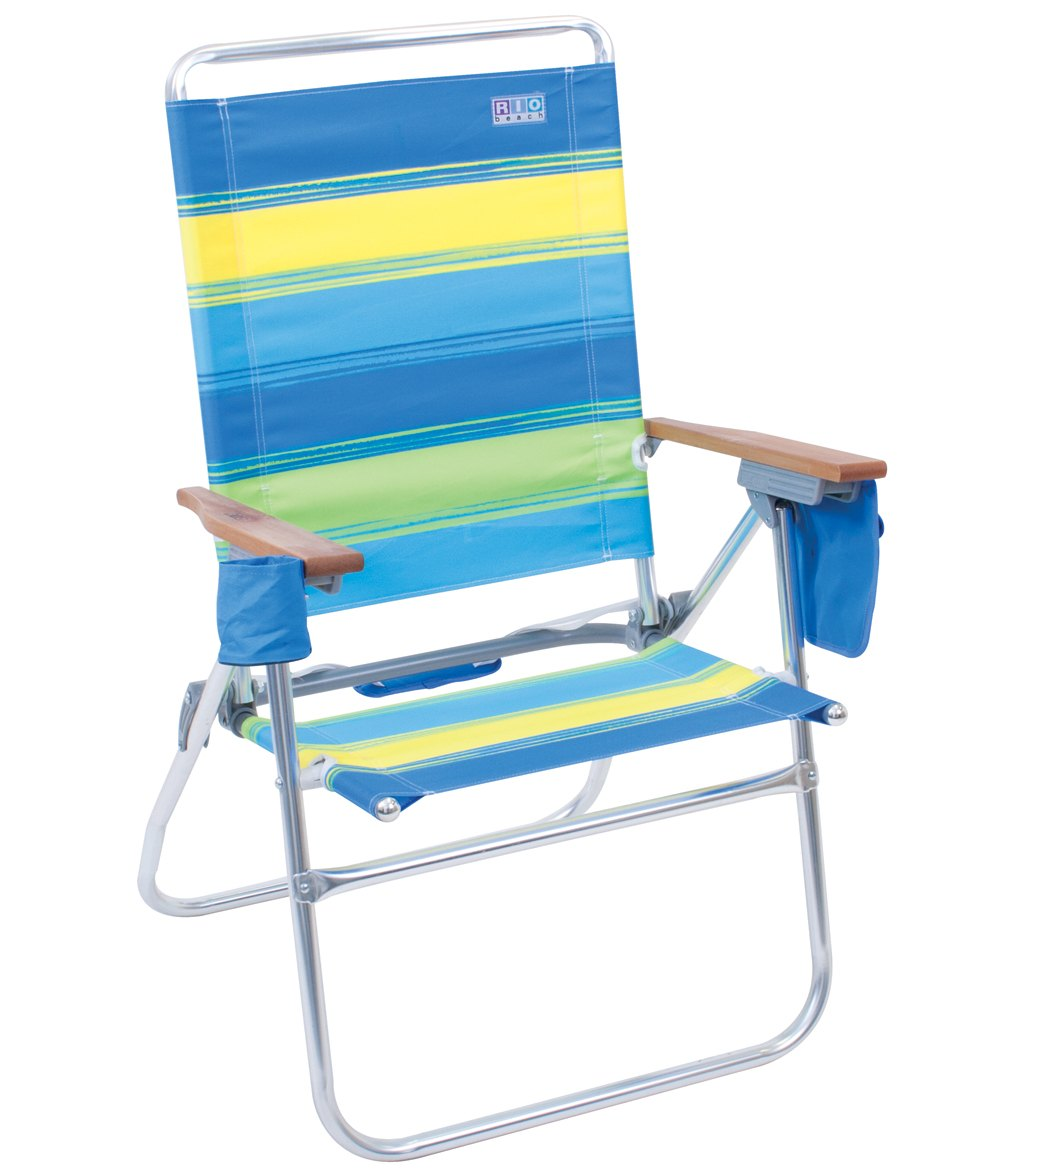 rio high boy beach chair office arm pads brands the hi blue and green striped